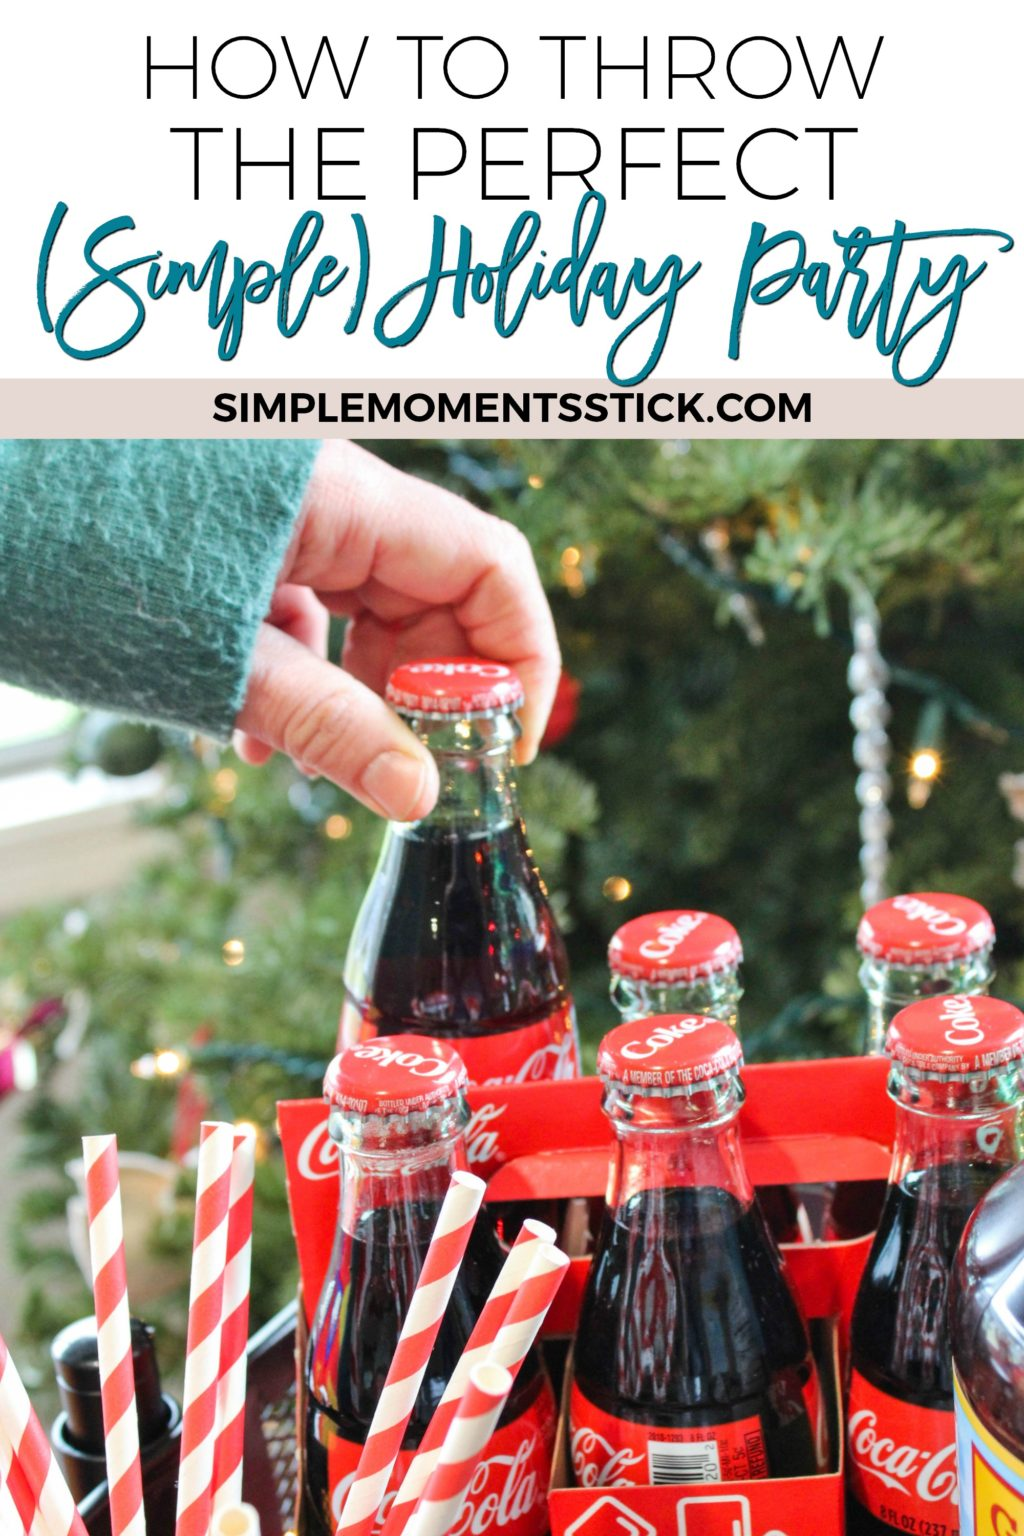 Sometimes the perfect holiday party is the simplest holiday party! Click through to get some great tips for throwing a simple but fantastic party!